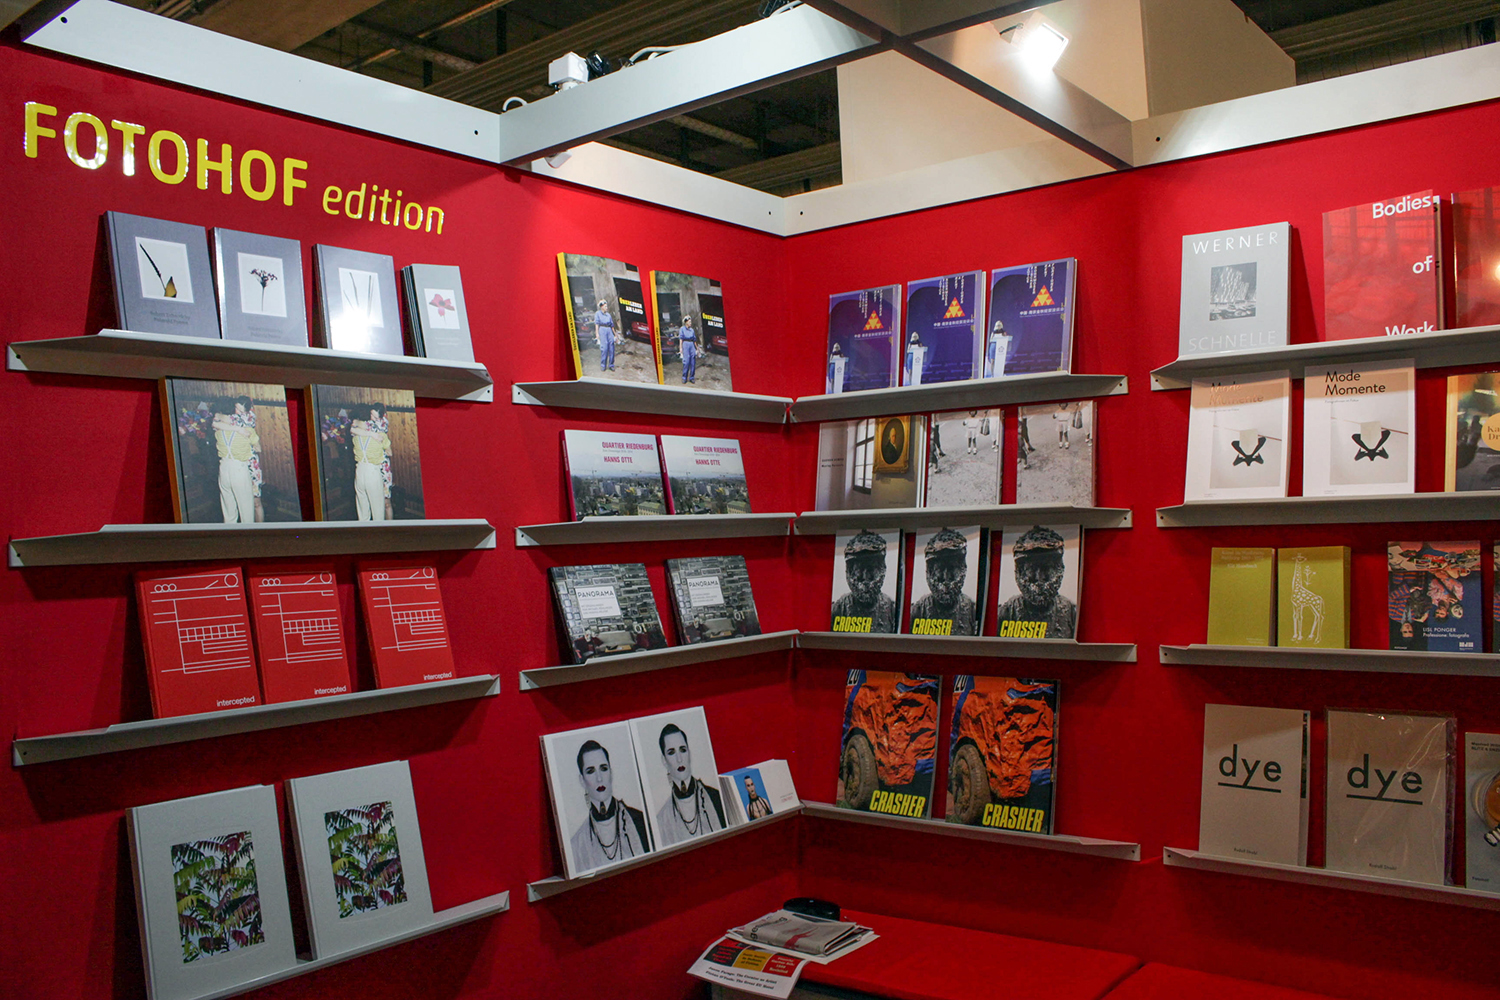 Fotohof Edition Hall 4.1, booth K82